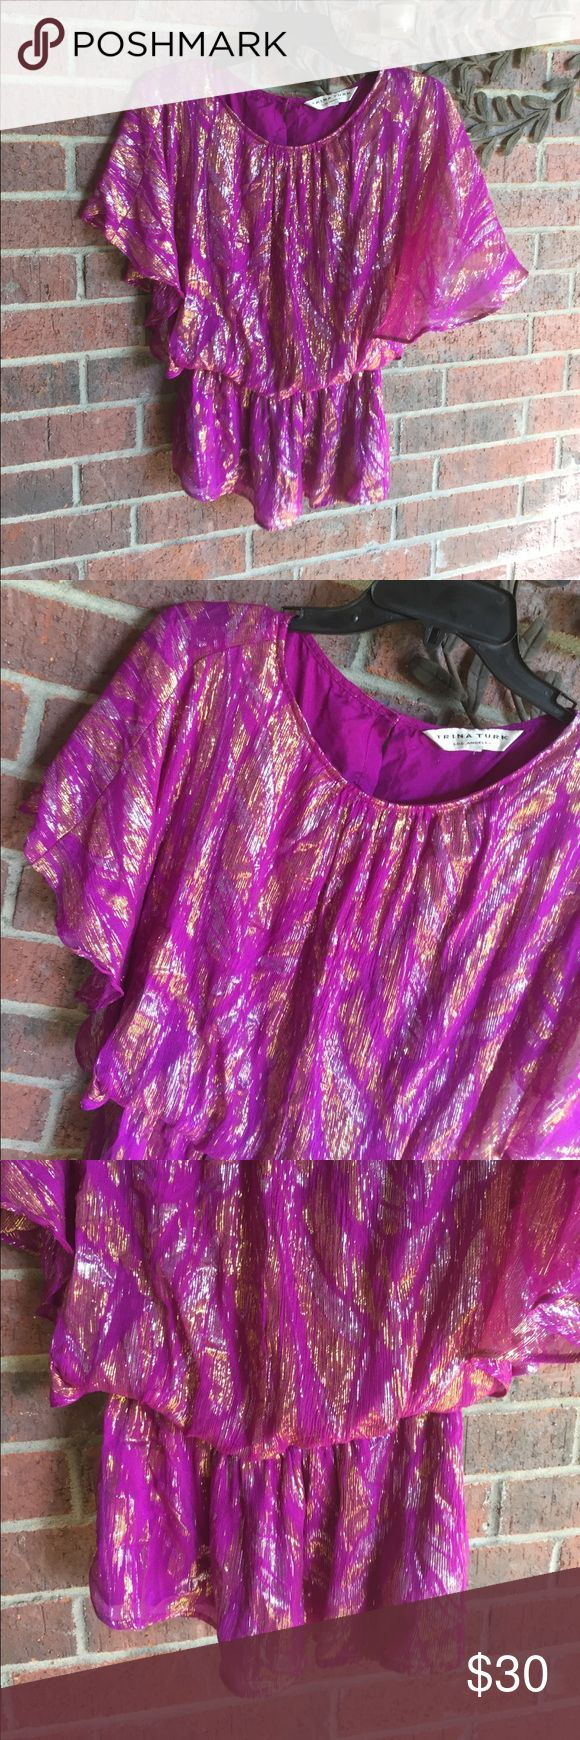 Trina Turk Purple metallic Blouse size Small S Features gathered waist and flyaway back opening.  Gorgeous for your dressier occasion!  Size Small (6145T) Trina Turk Tops Blouses